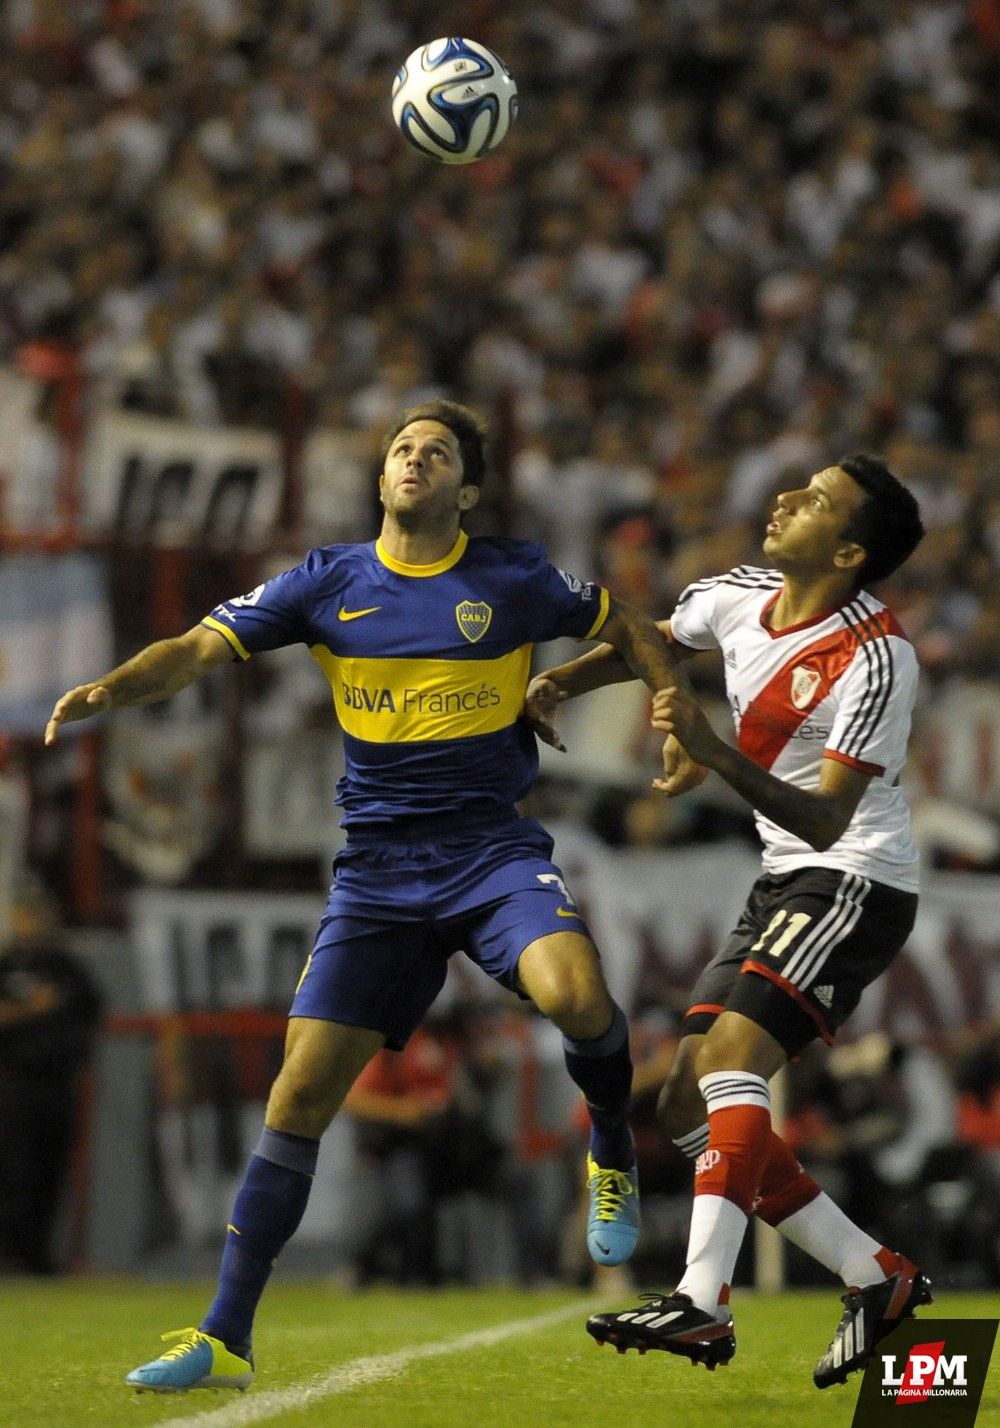 River vs. Boca (Mar del Plata - 2014)